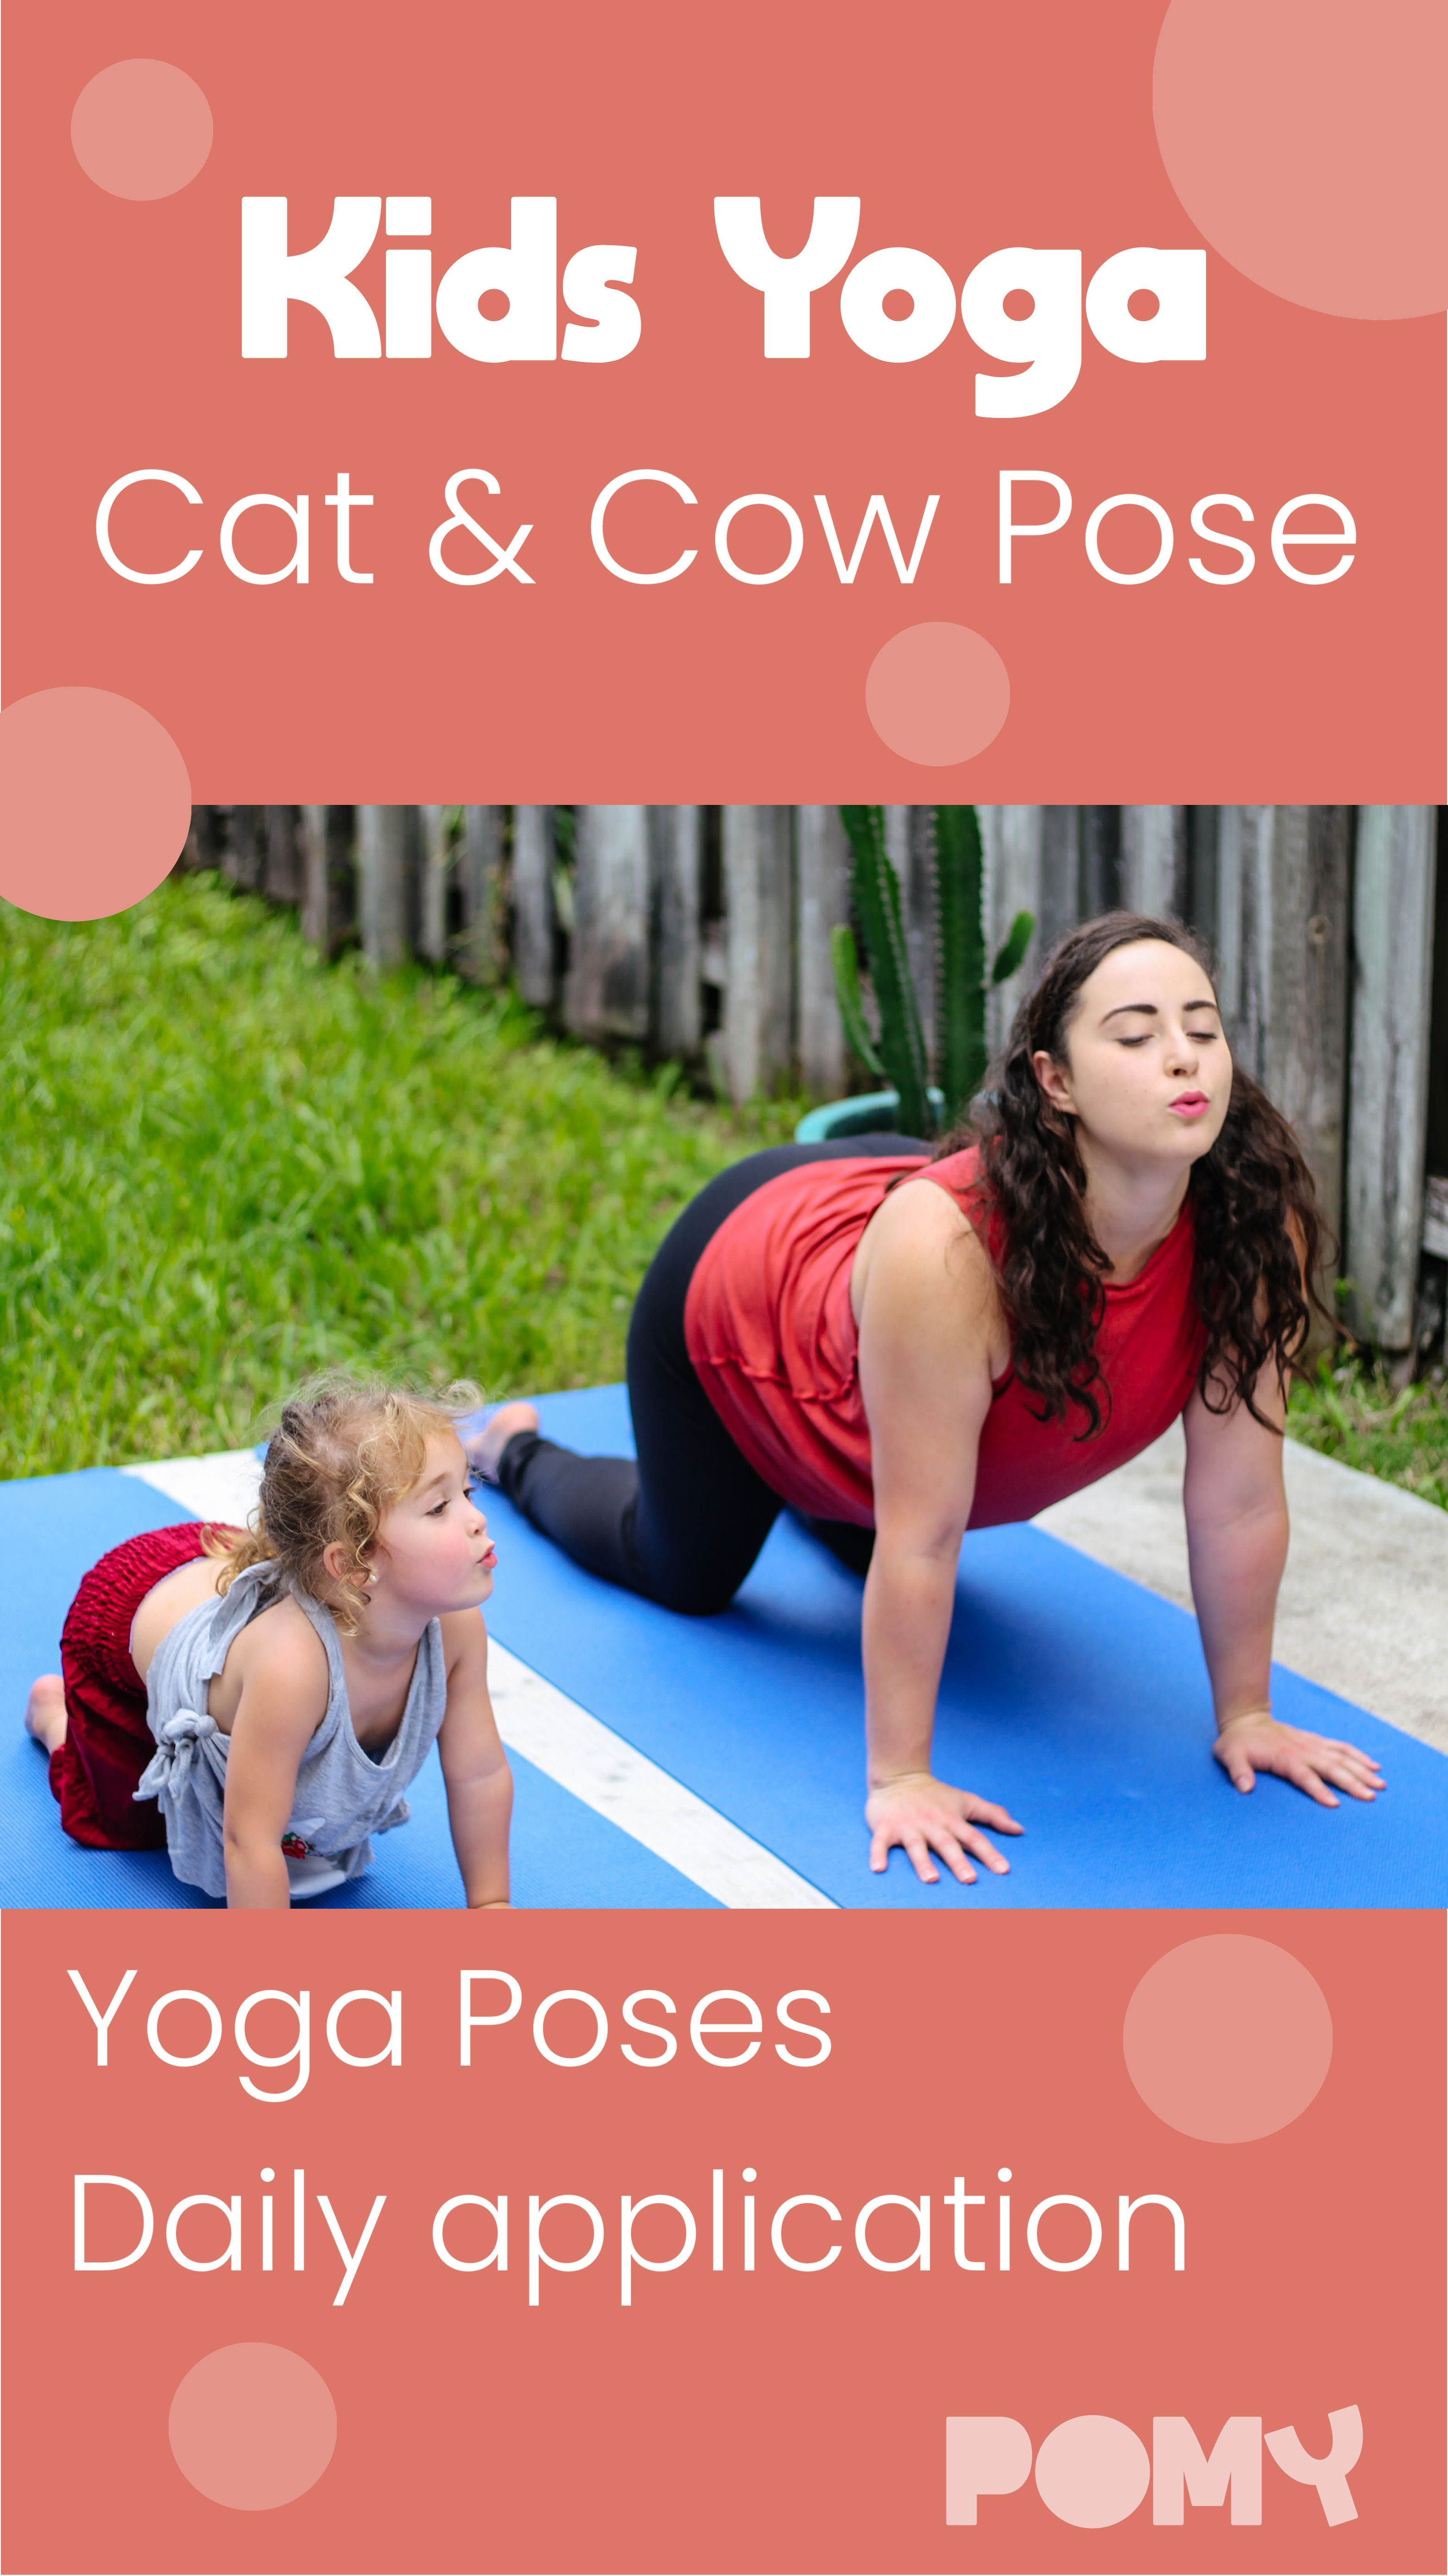 Cat & Cow Pose | Yoga for kids, Cow pose yoga, Cat cow pose